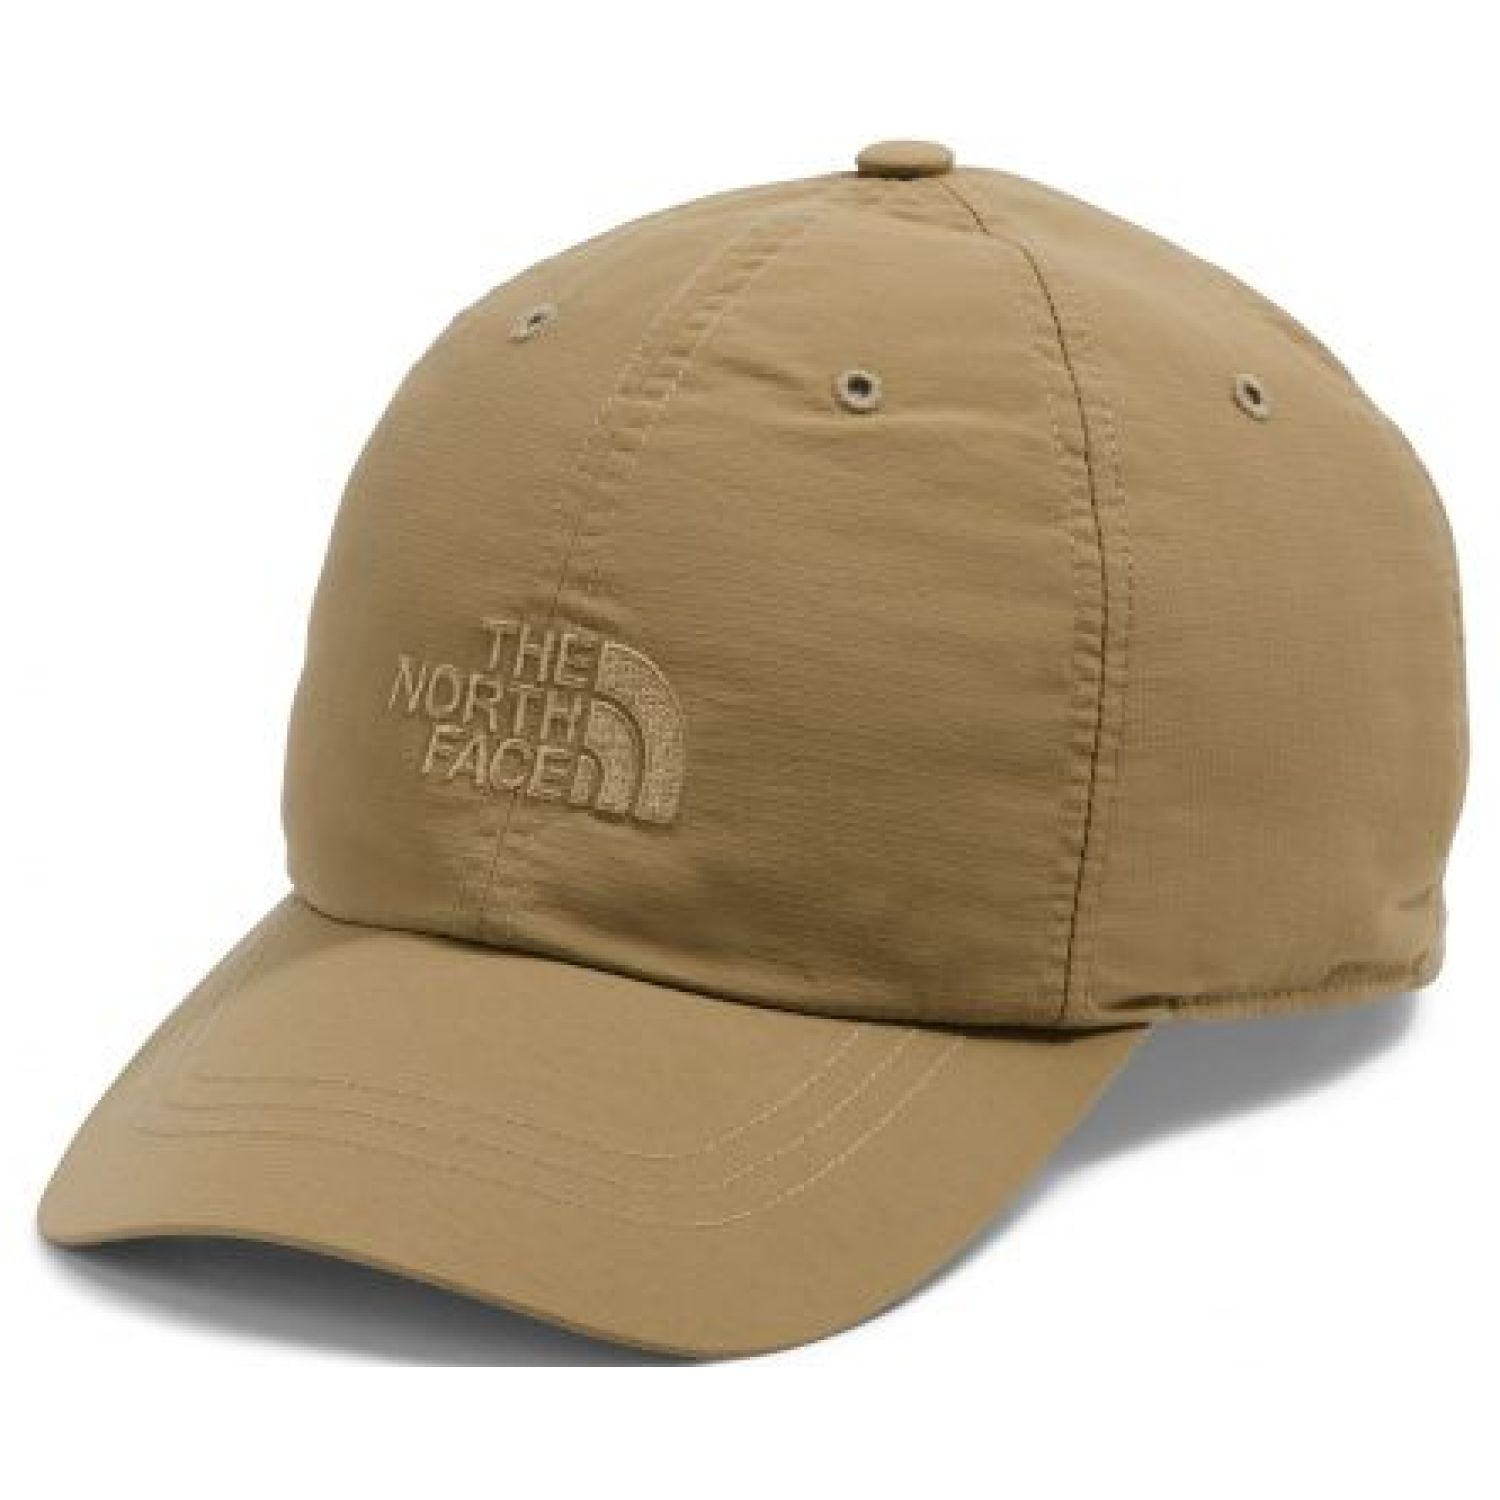 The North Face Horizon Hat Beige Gorras de béisbol